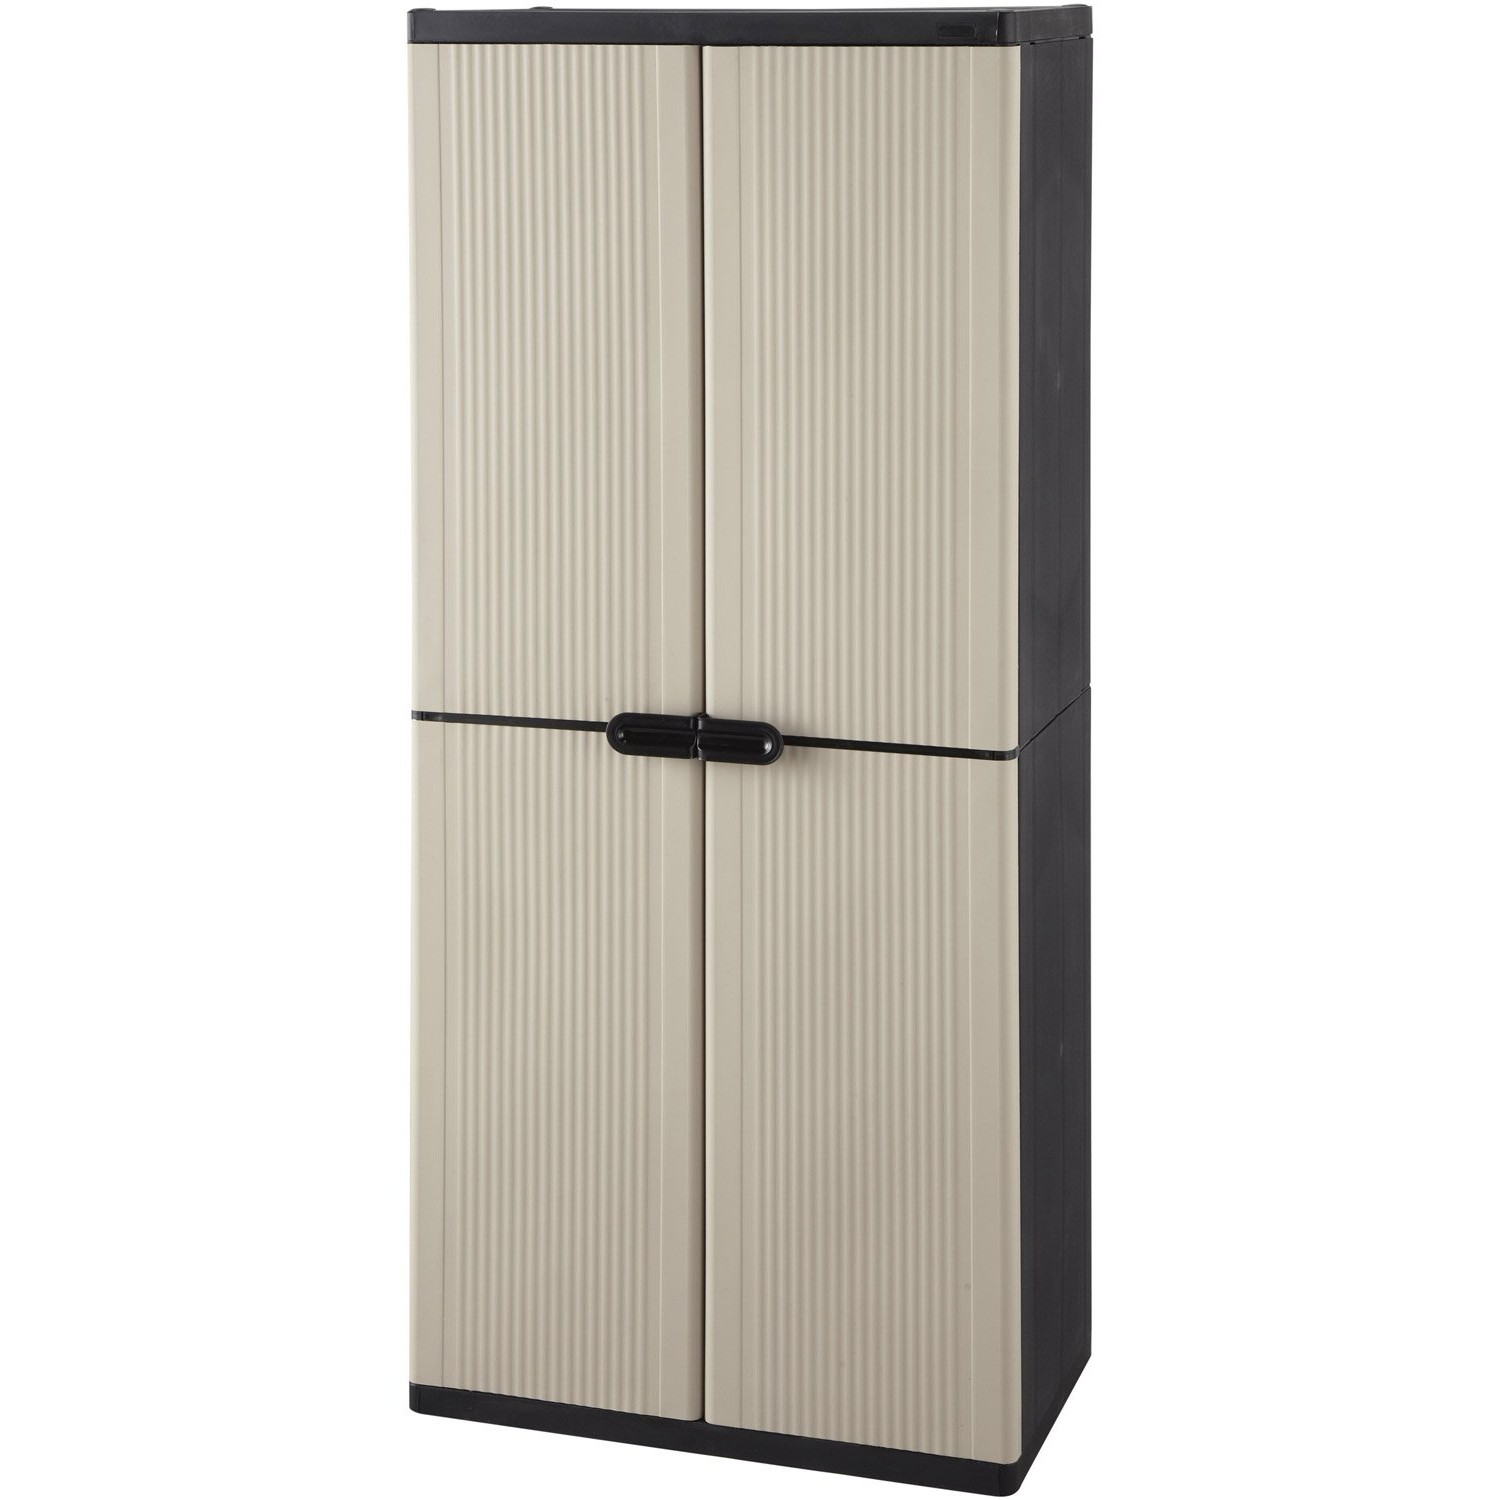 armoire plastique de jardin leroy merlin armoire id es de d coration de maison 56lg7zxl30. Black Bedroom Furniture Sets. Home Design Ideas